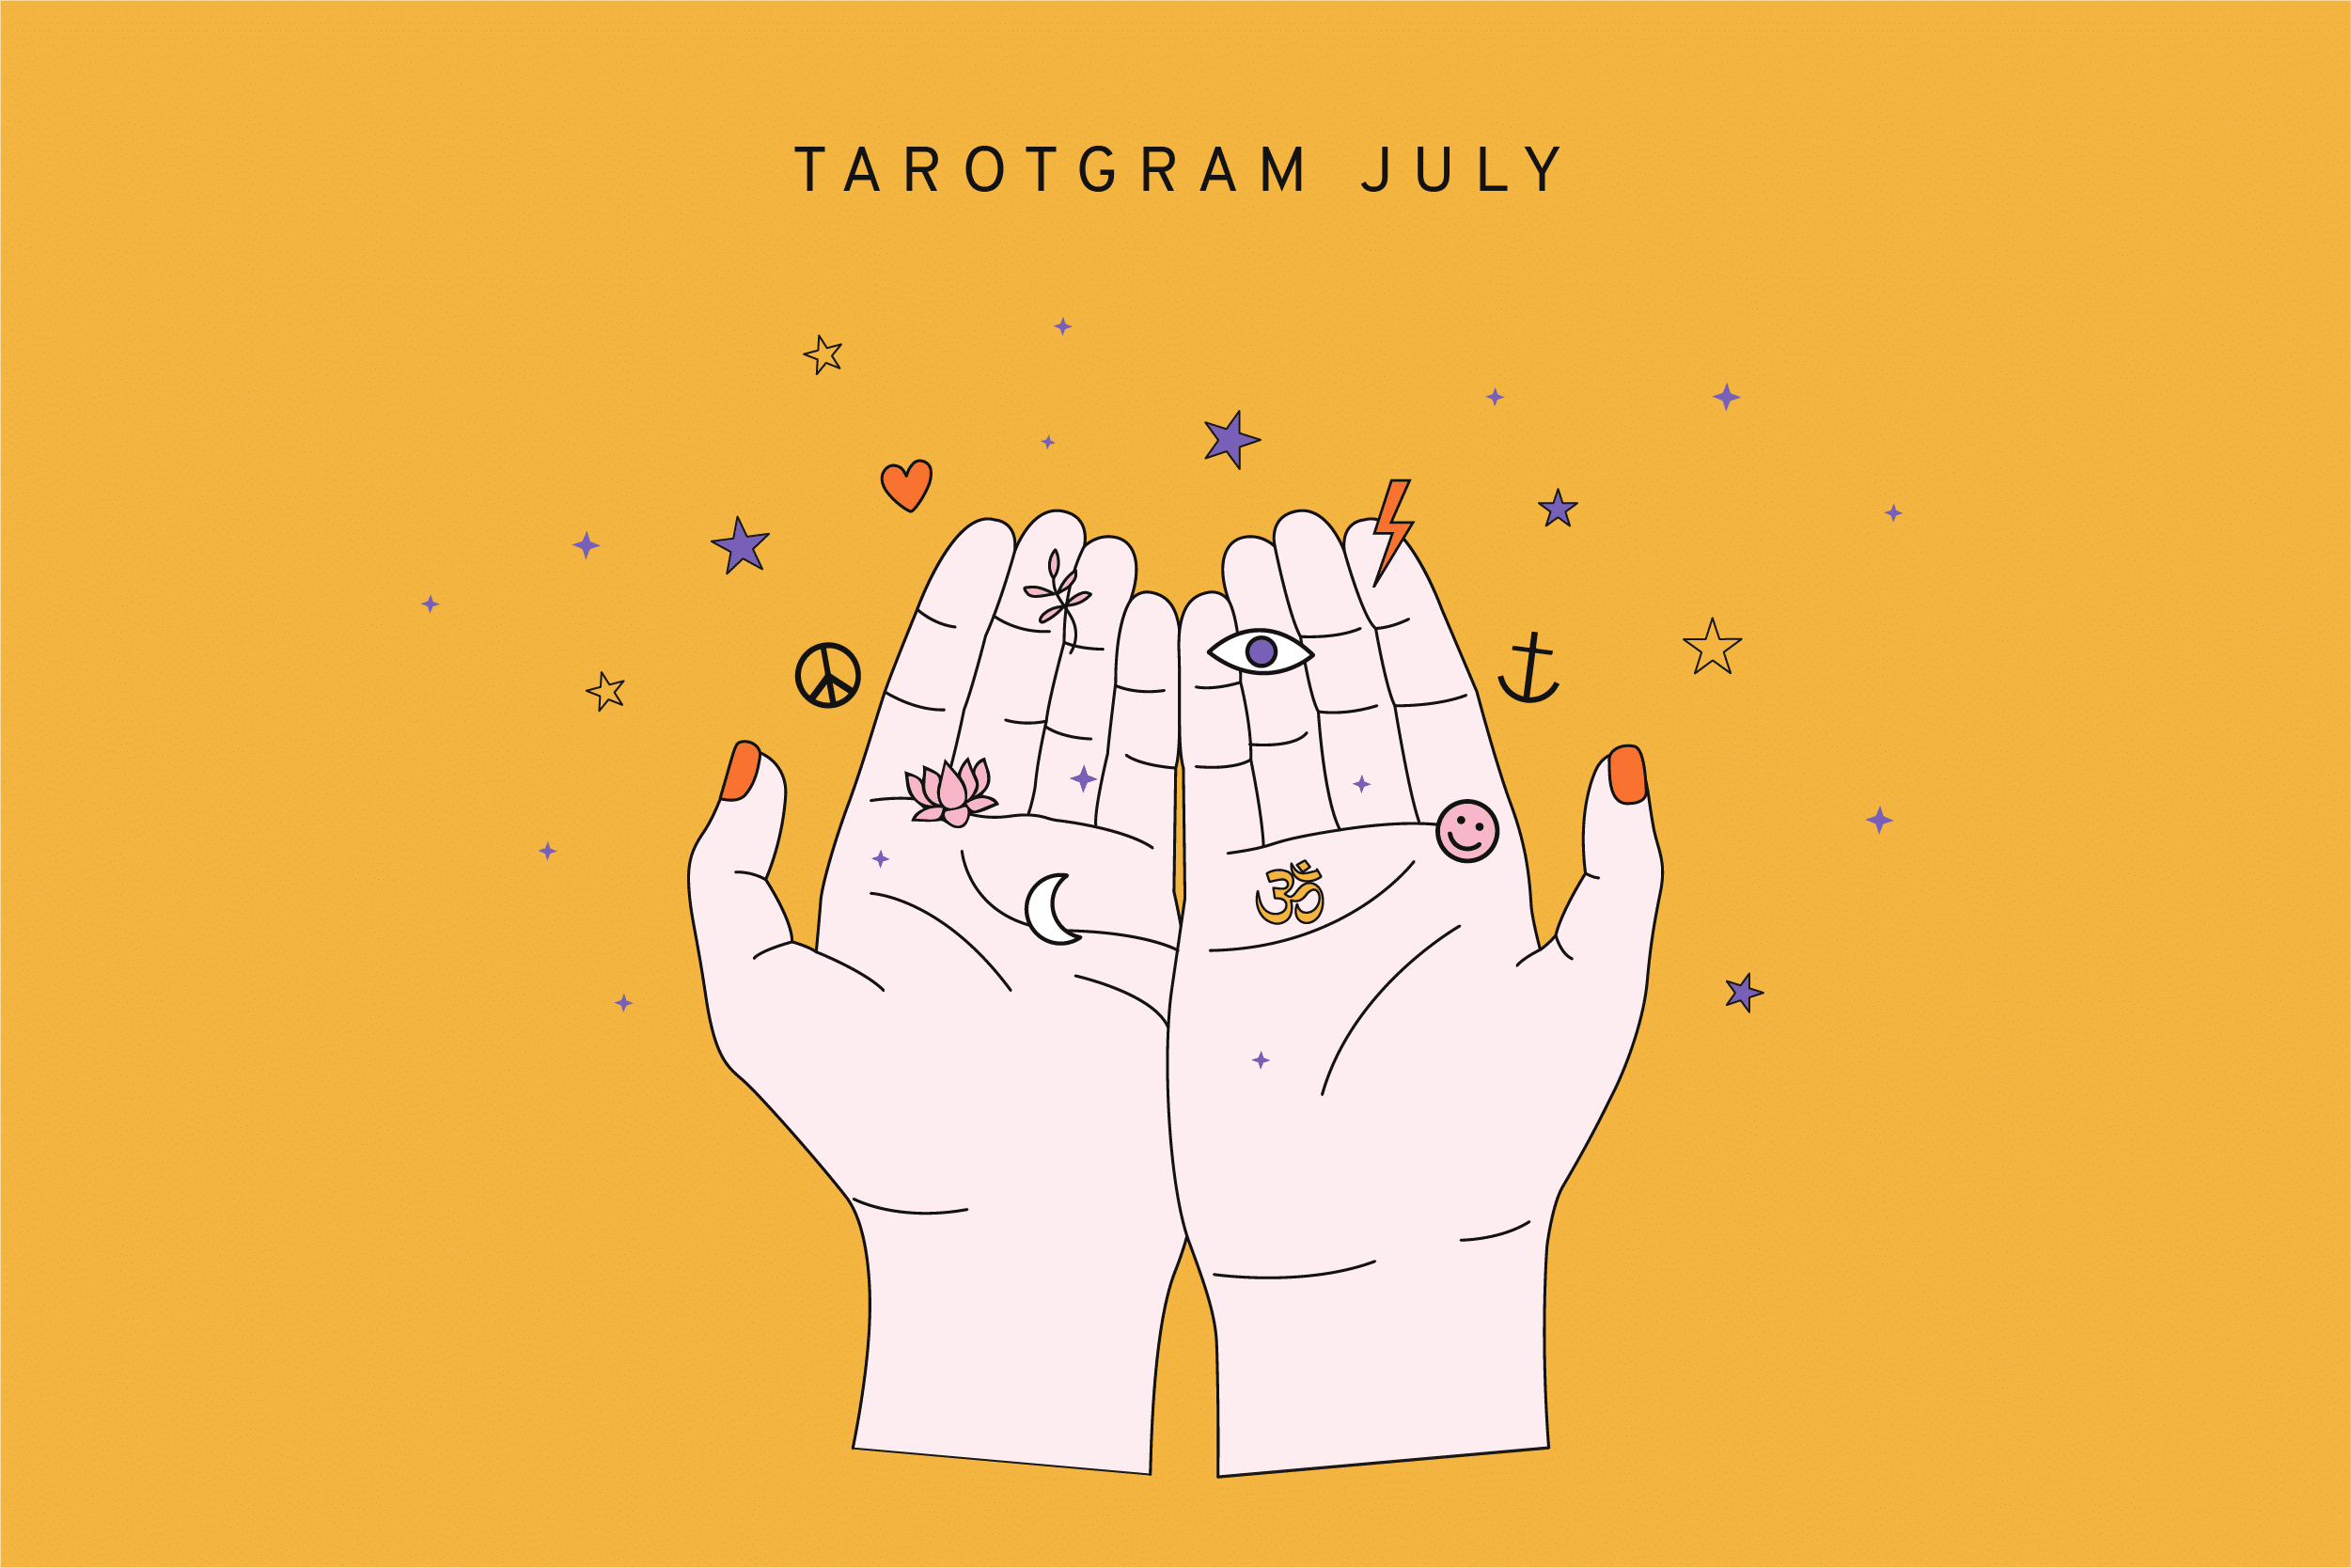 MG_Tarotgram_2020_Blog-July